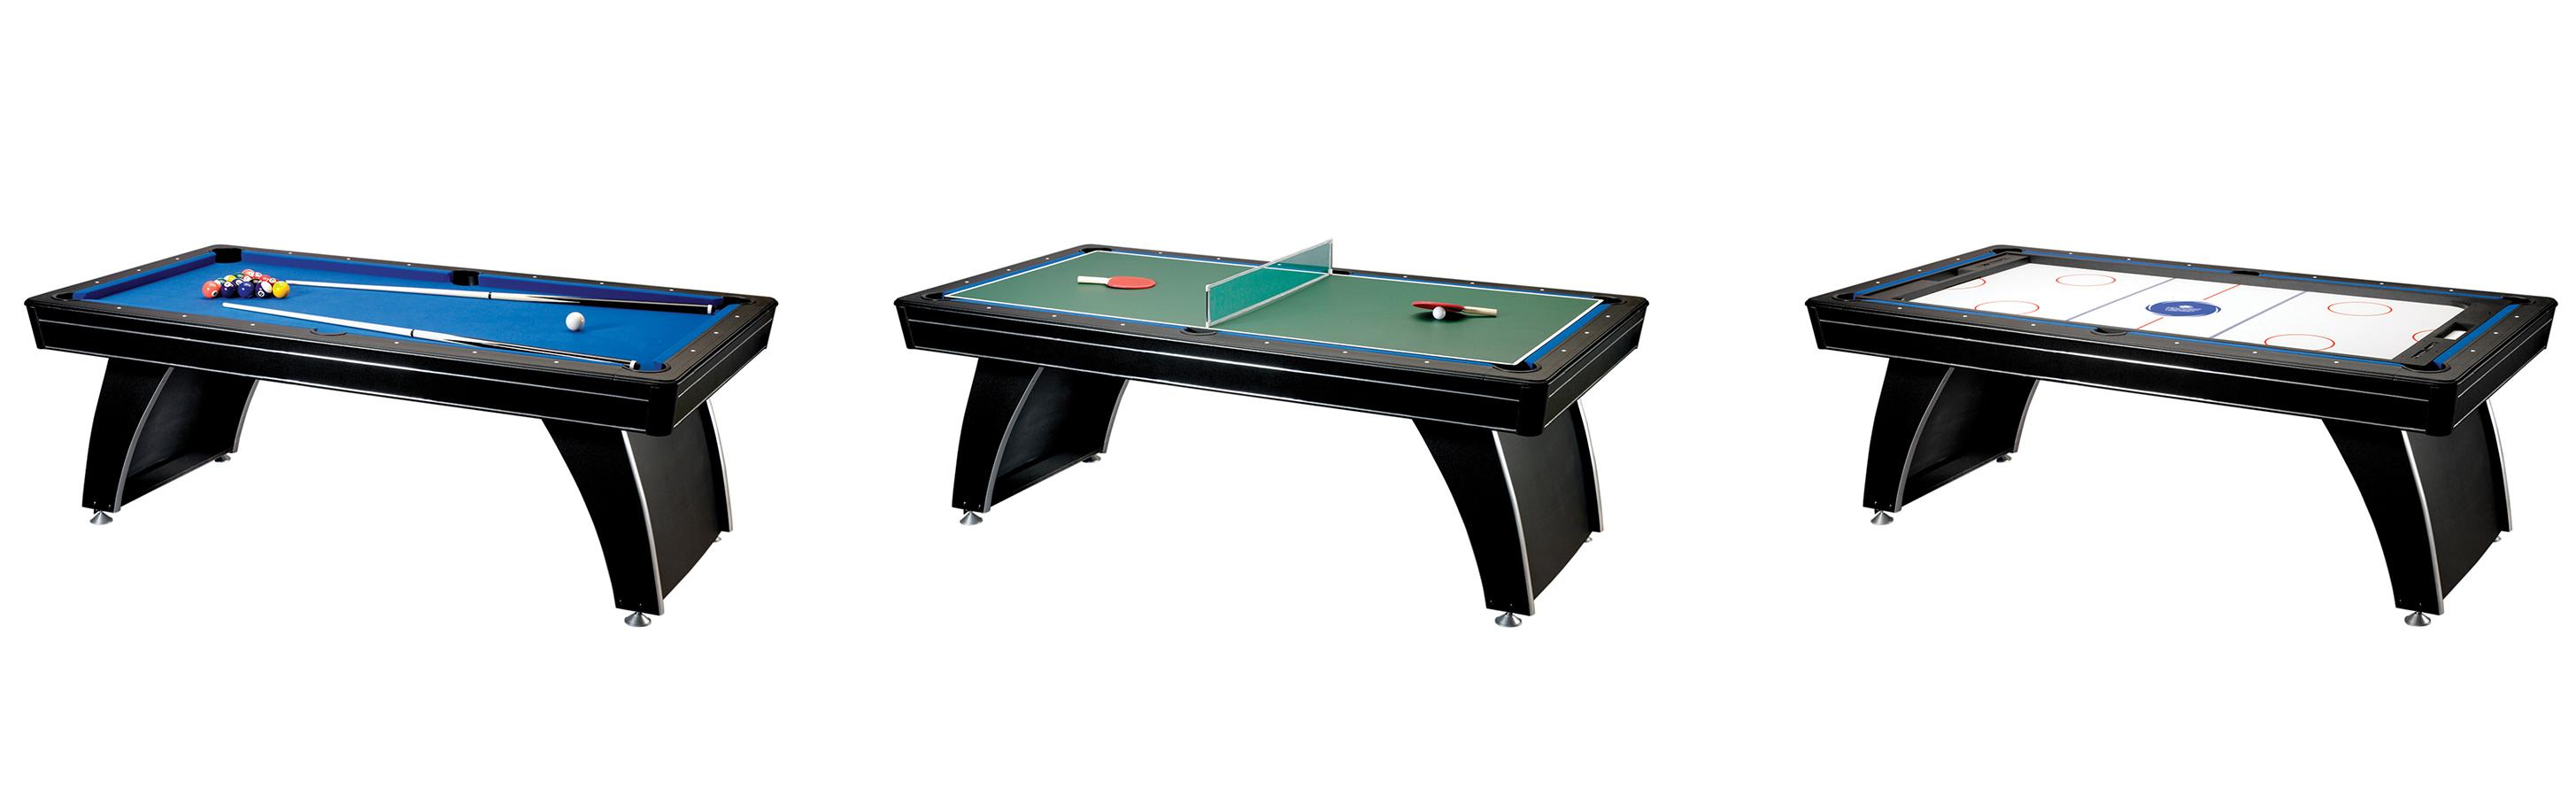 3 in 1 ping pong pool air hockey table - From The Manufacturer